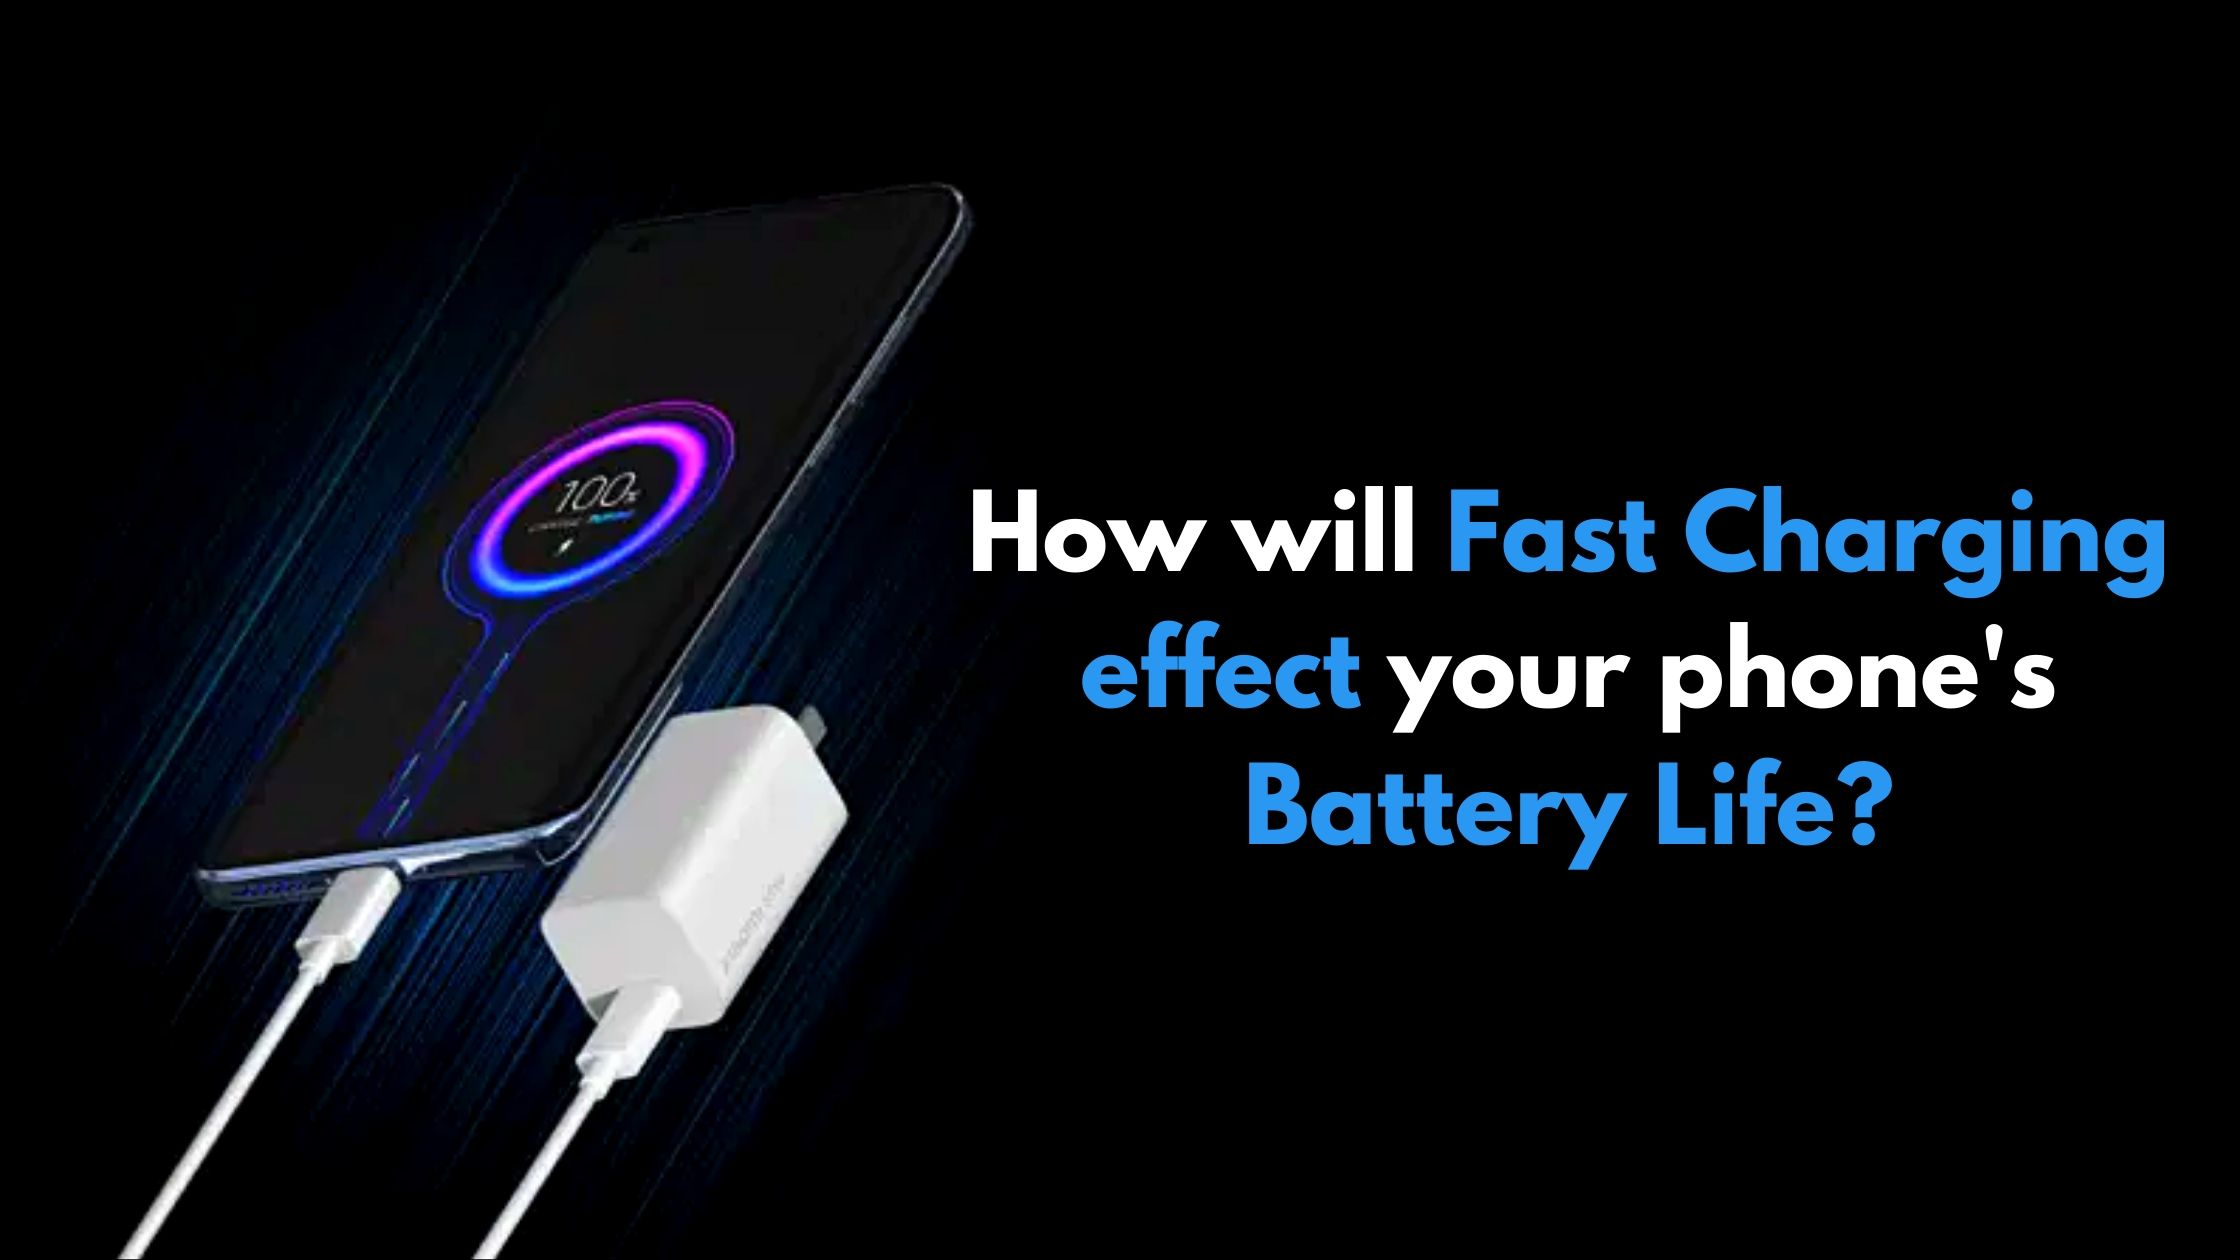 Does Fast Charging affect phone's battery life?